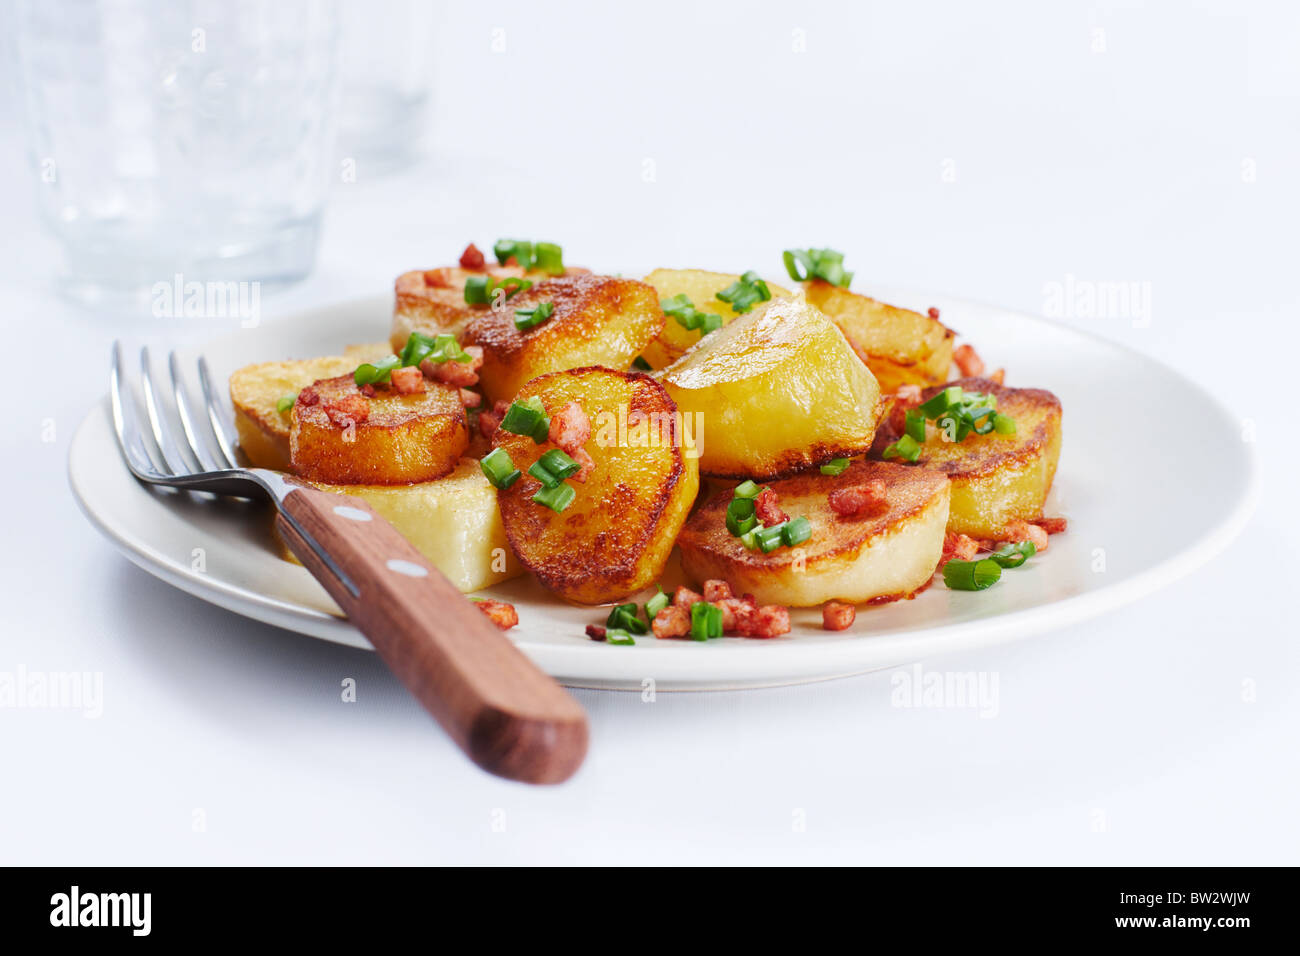 Image of fried potatoes with green leek - Stock Image